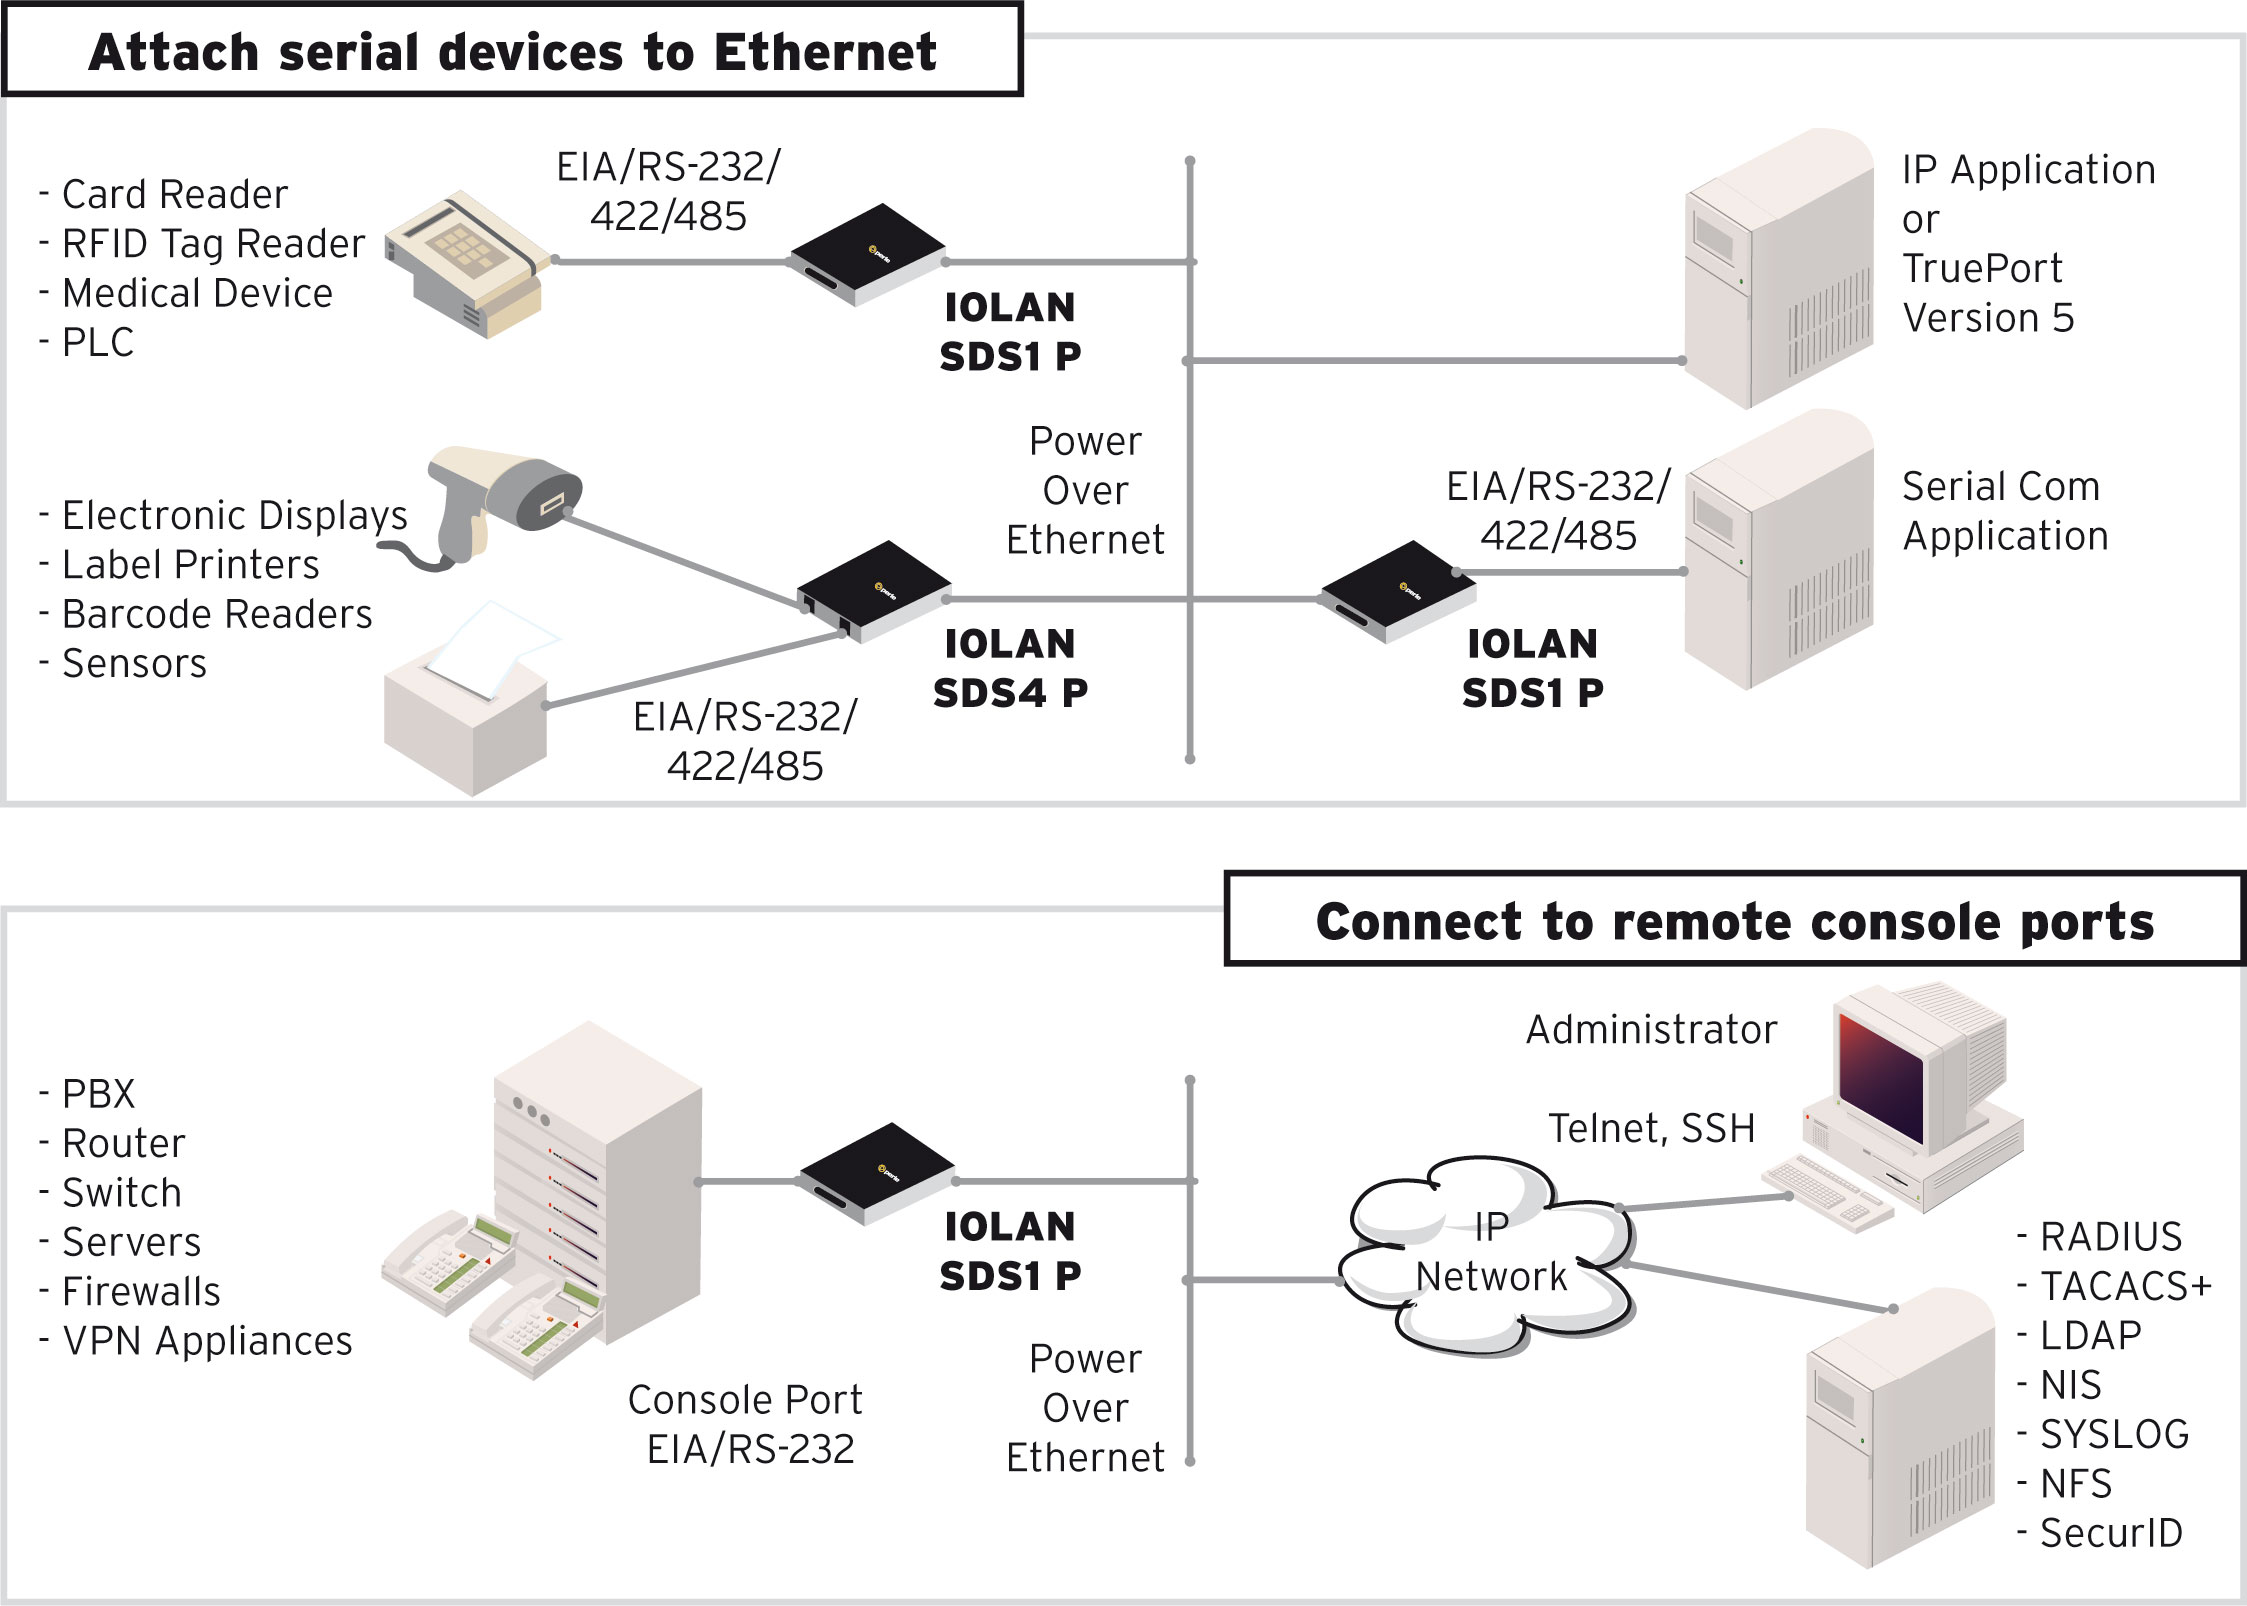 IOLAN SDG P Device Server Diagram